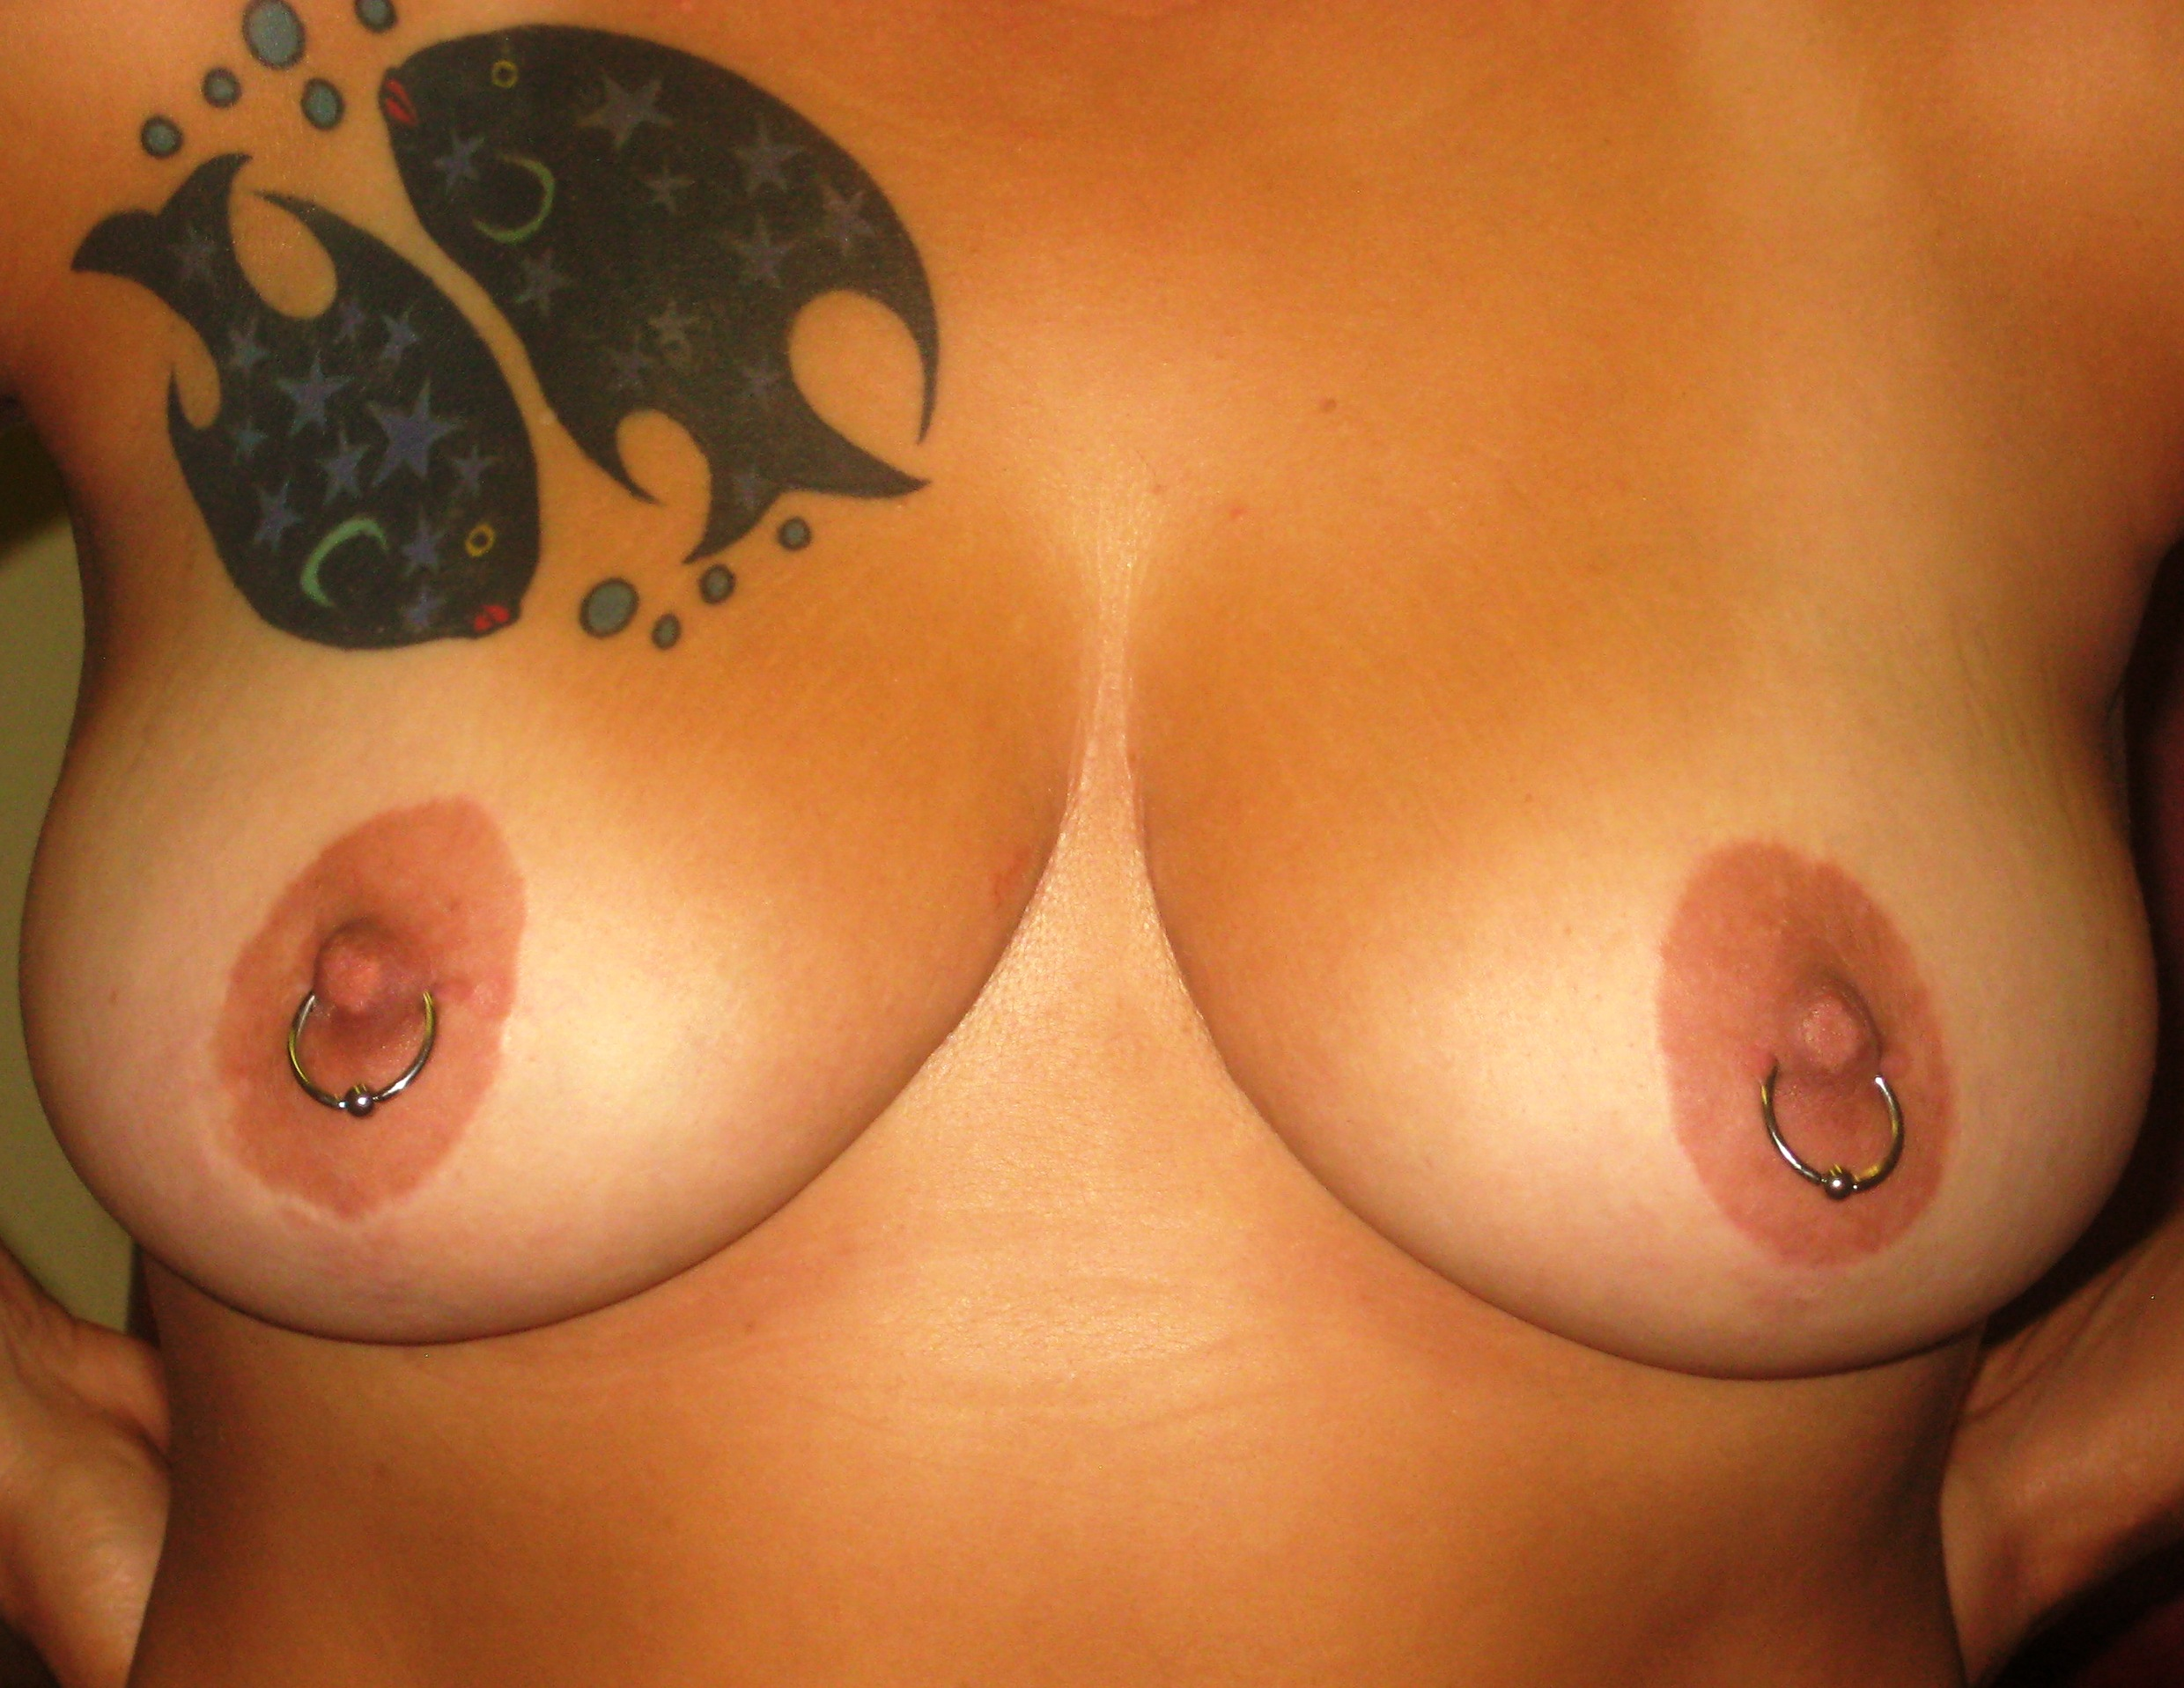 Similar. Quite girl getting nipple pierced simply excellent